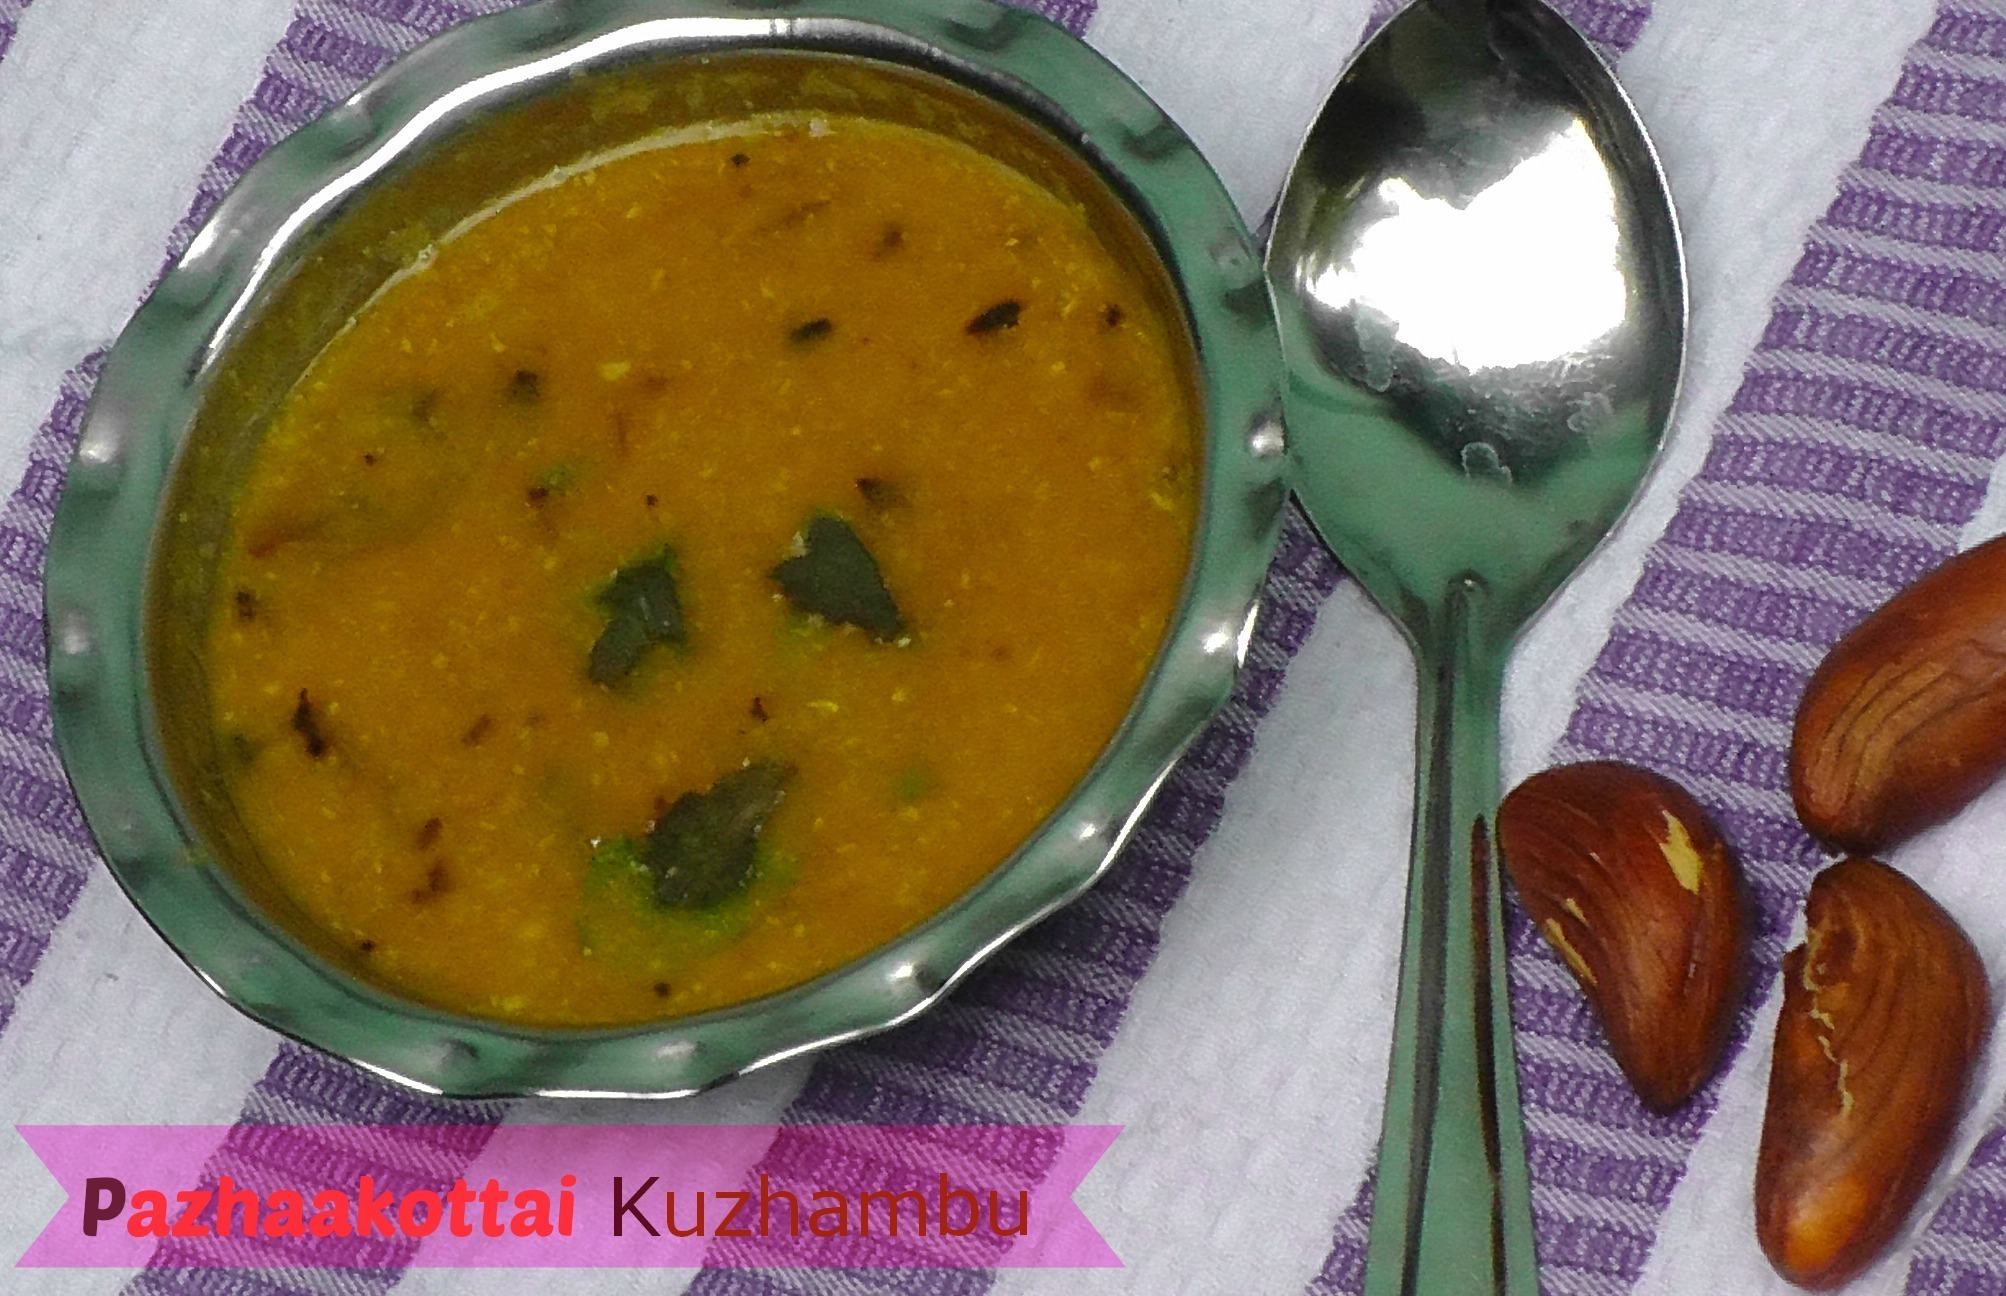 PazhaaKottai Kuzhambu | Jackfruit Seed Stew | No Onion No Garlic Recipe